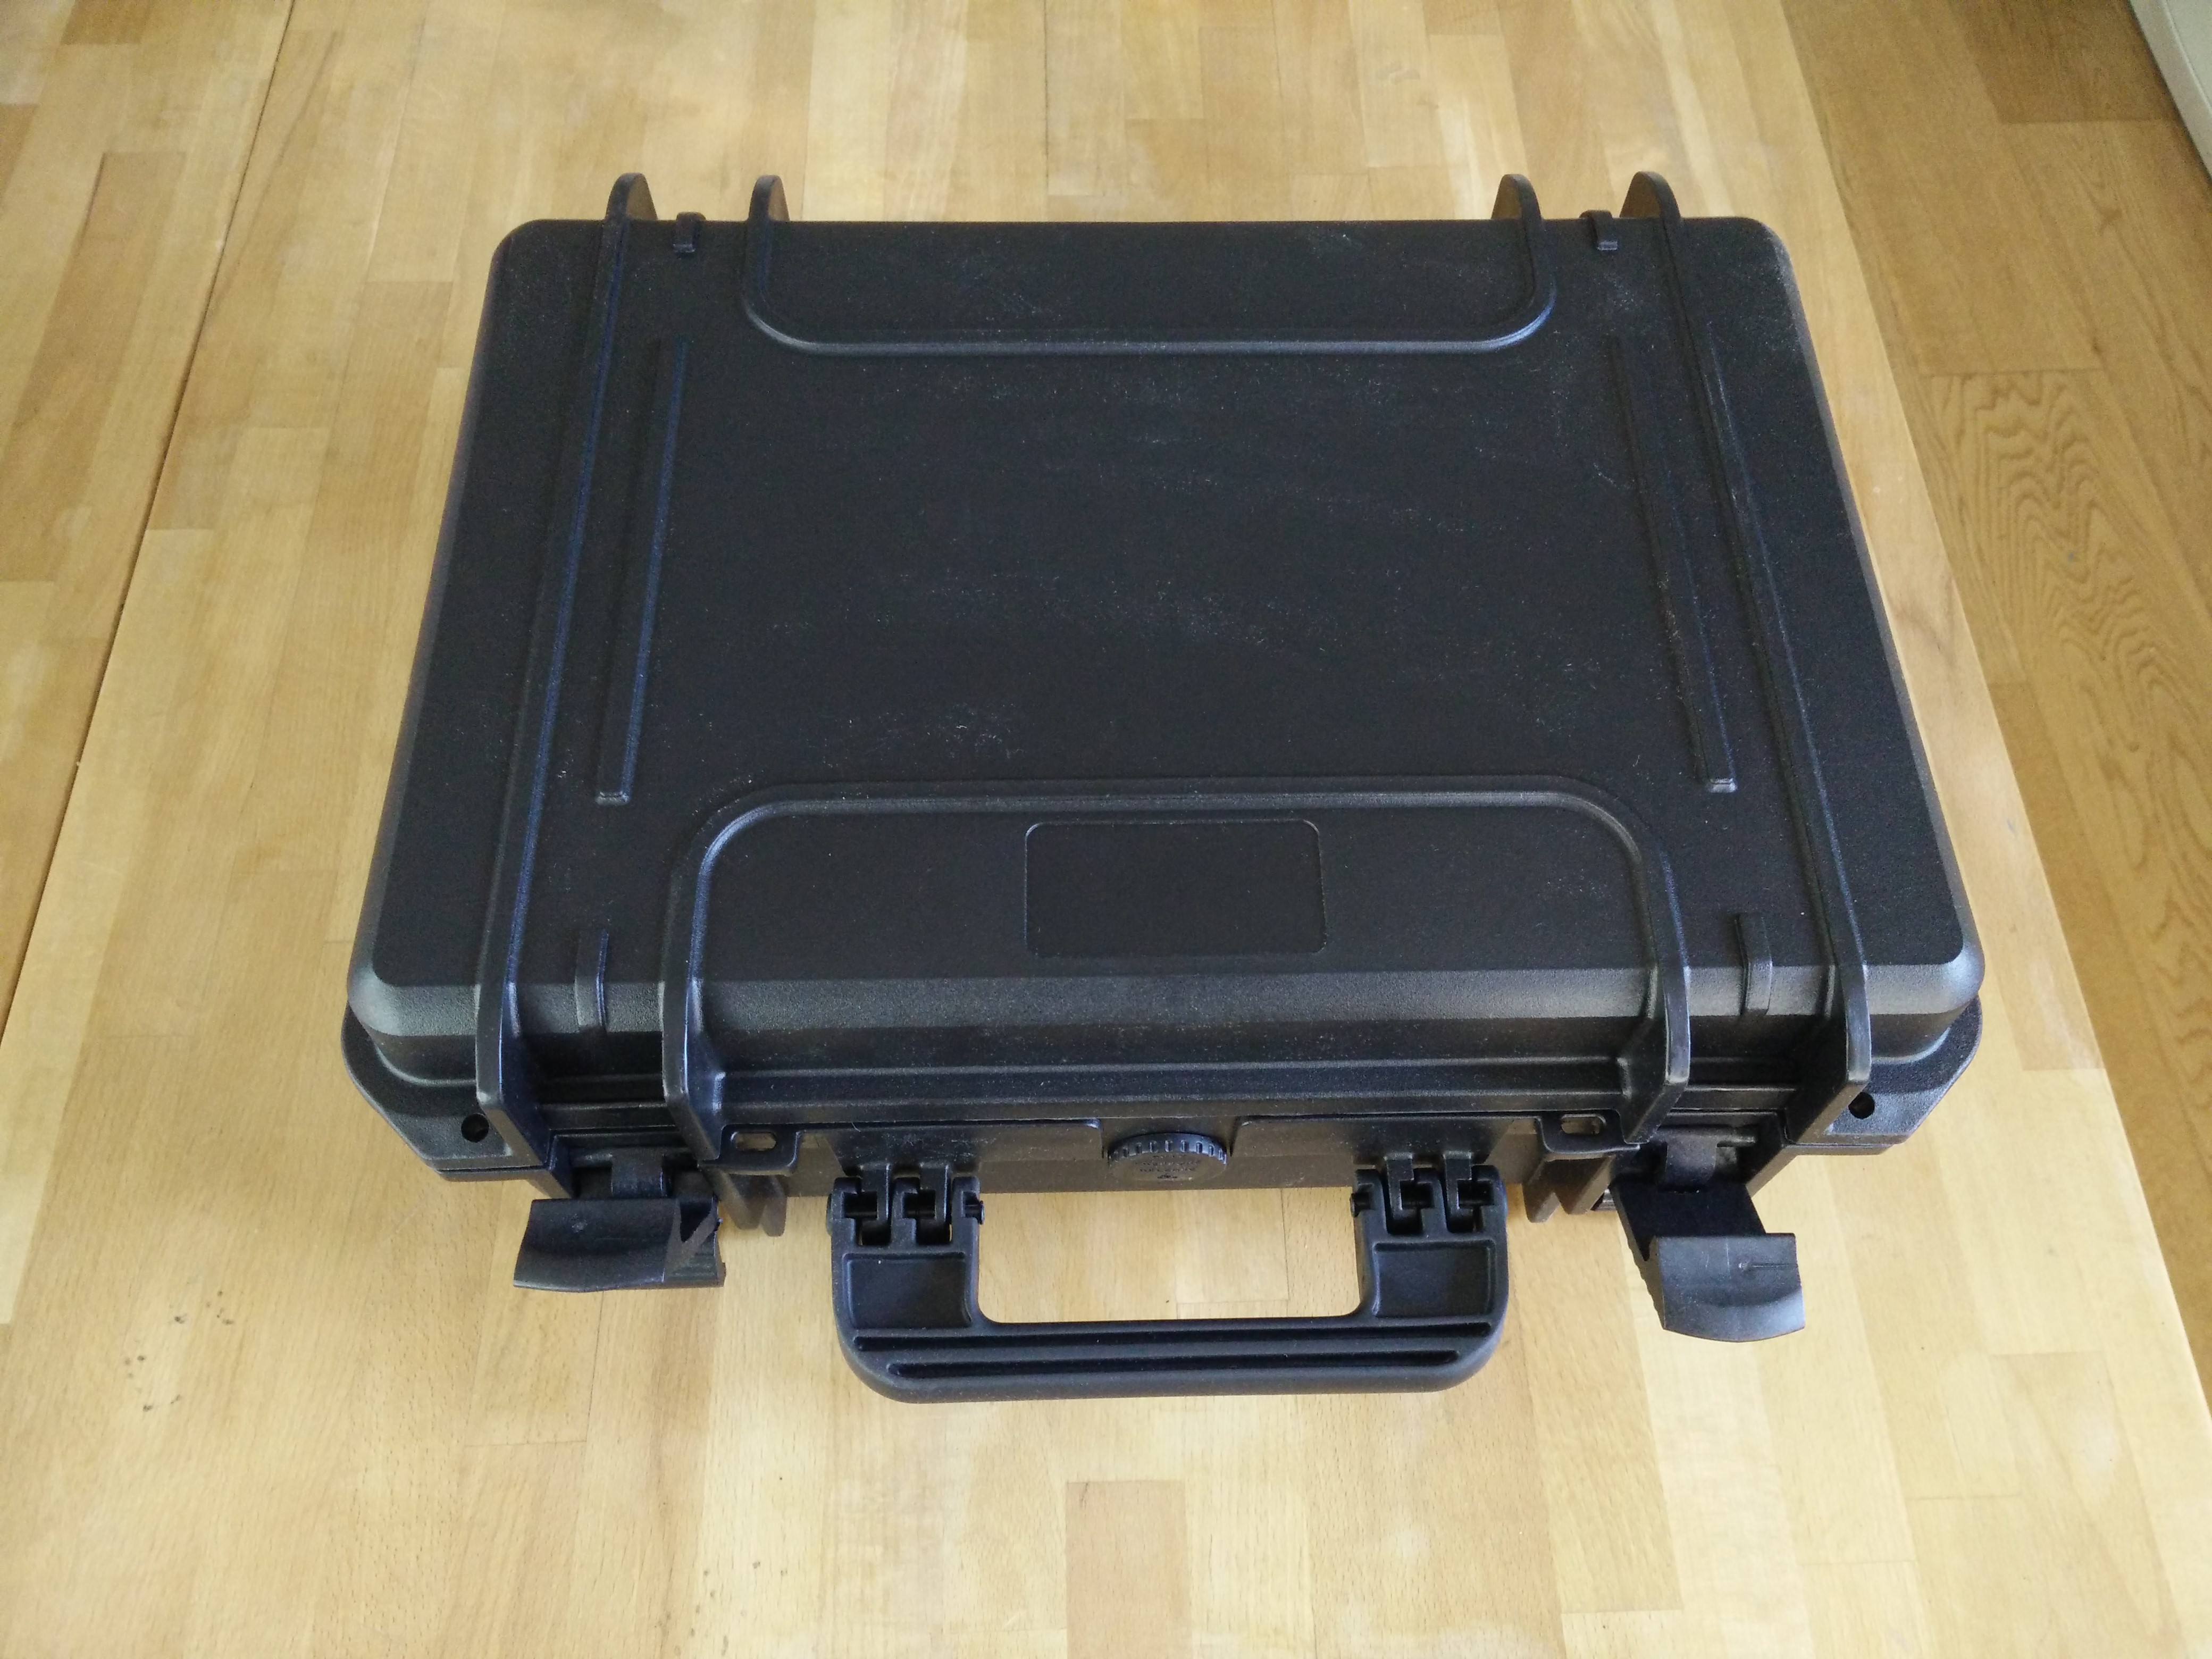 Splashproof case 430